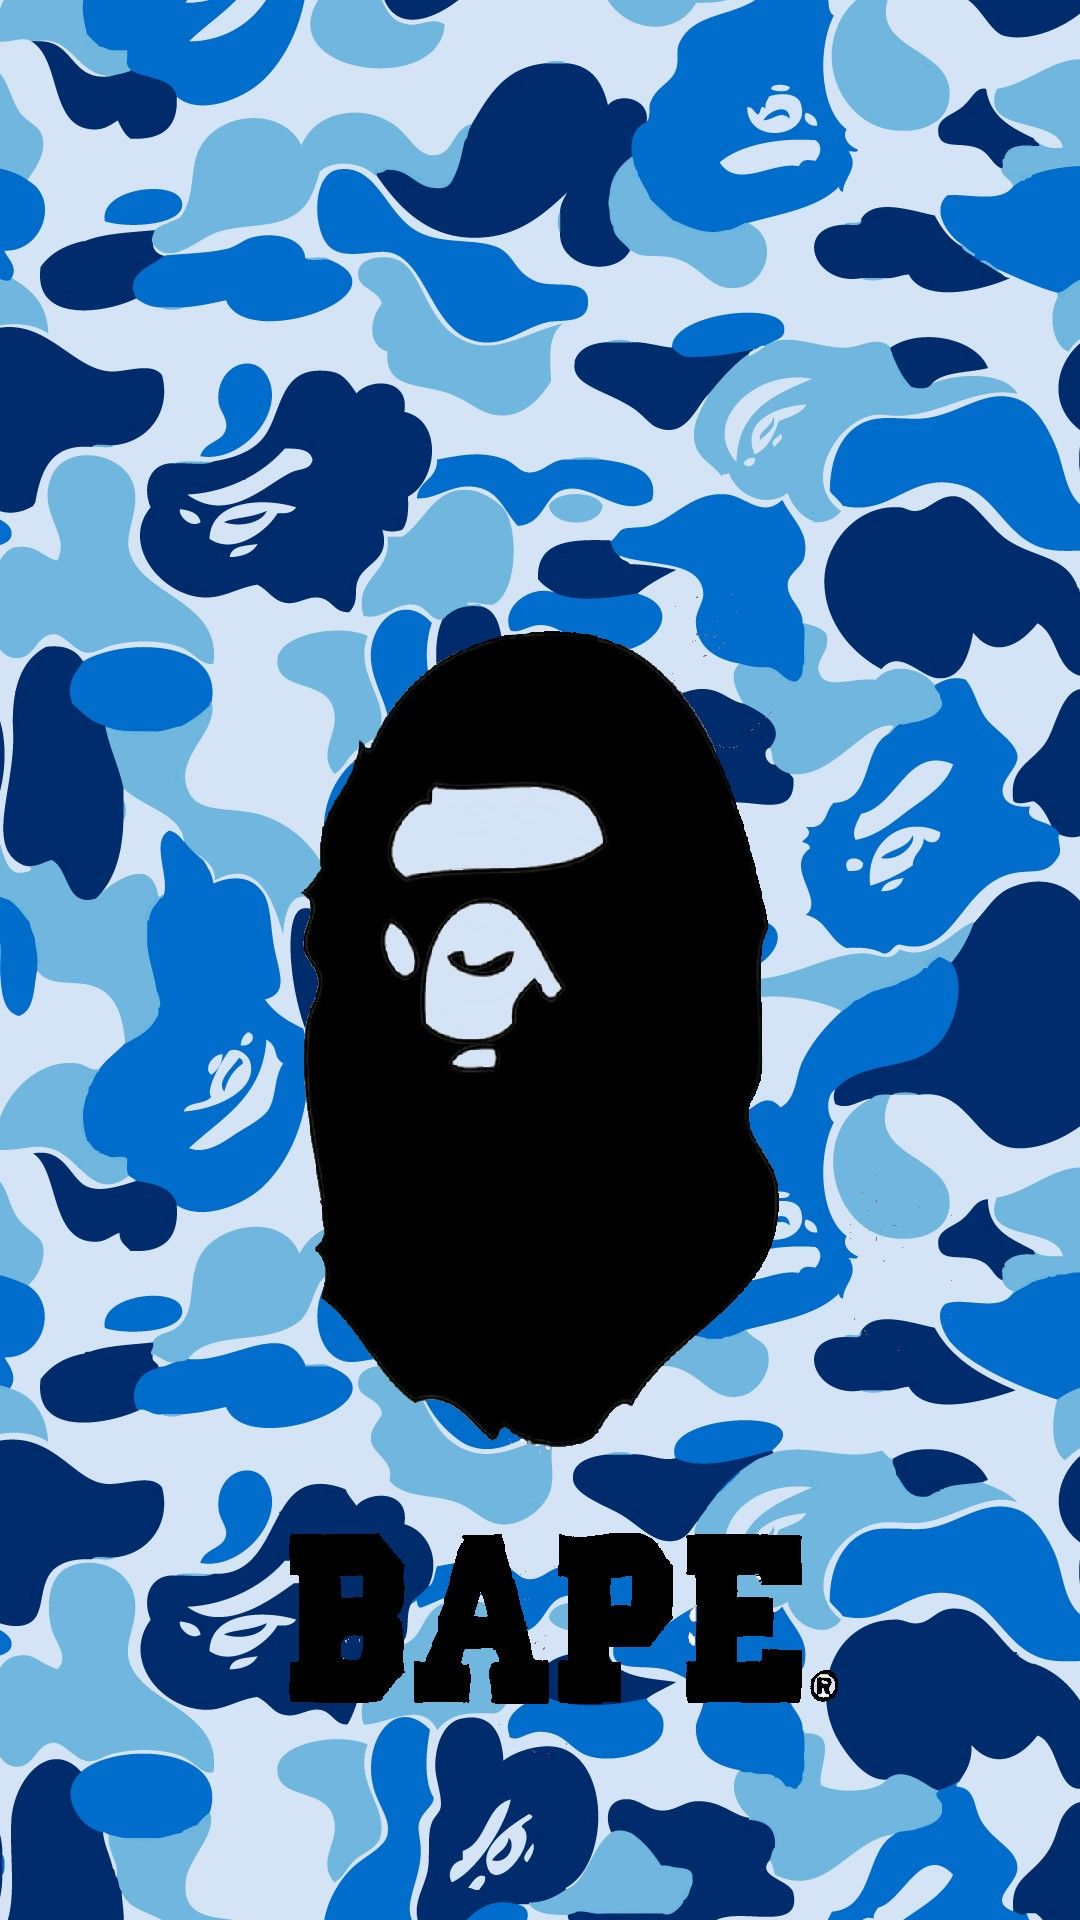 Awesome Bape Screensaver In 2020 Bape Wallpaper Iphone Kaws Wallpaper Bape Wallpapers